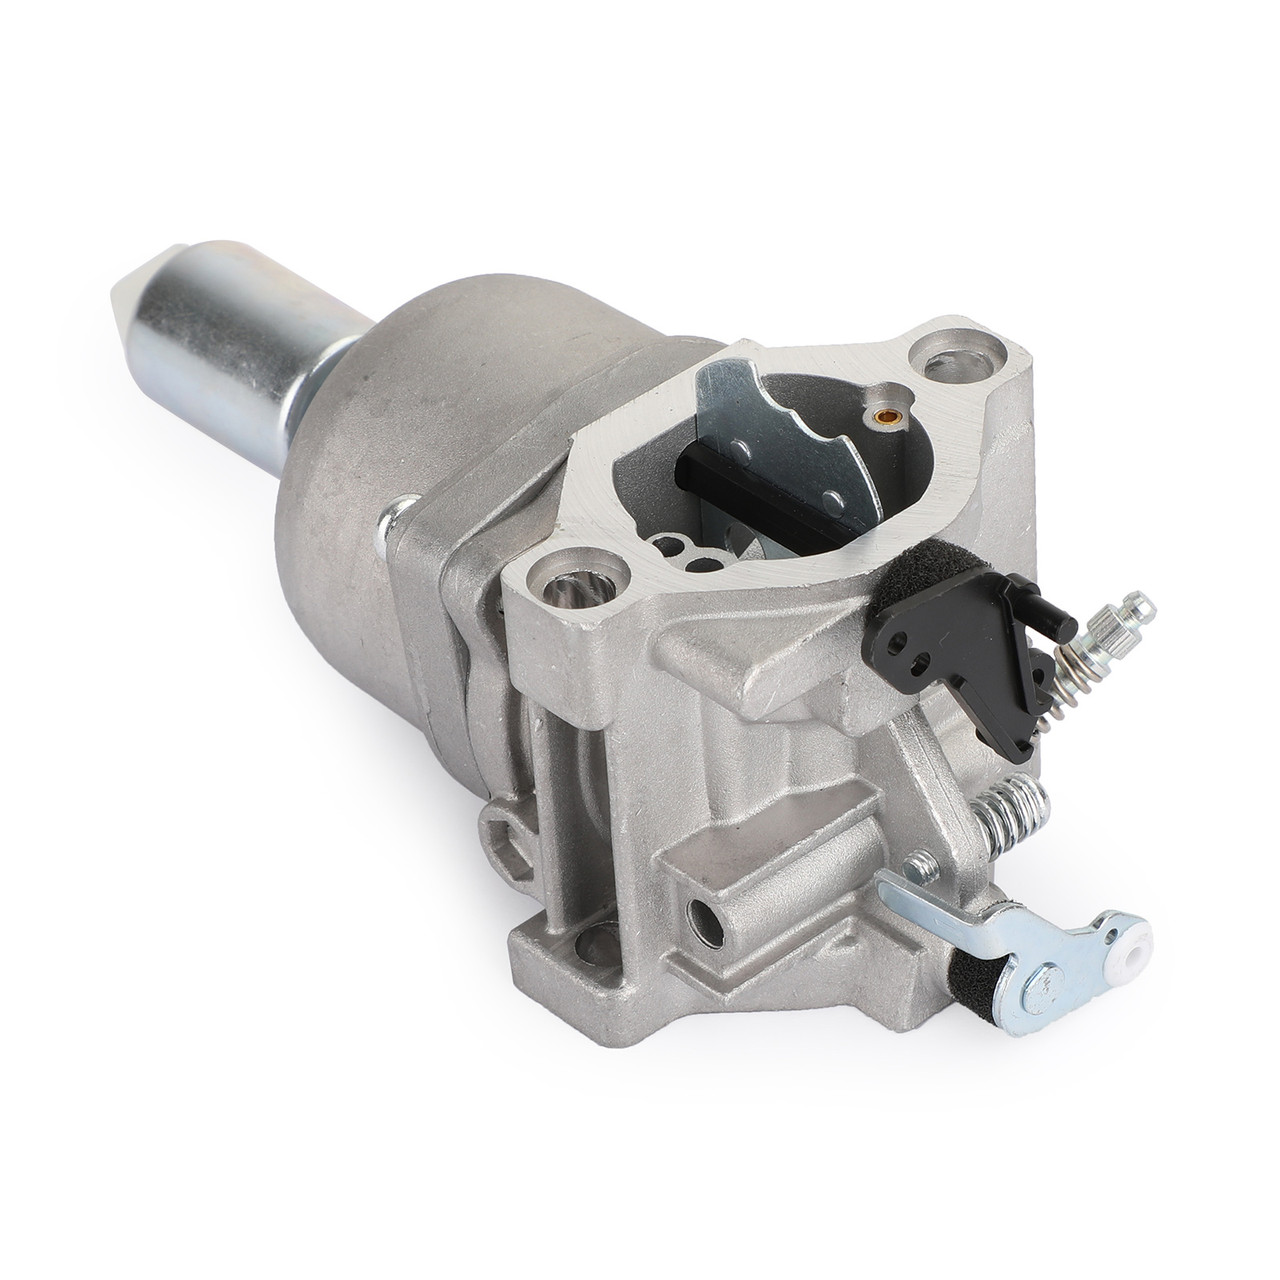 Carburetor For LT1000 BS Carburetor 794572 793224 697141 697216 Silver